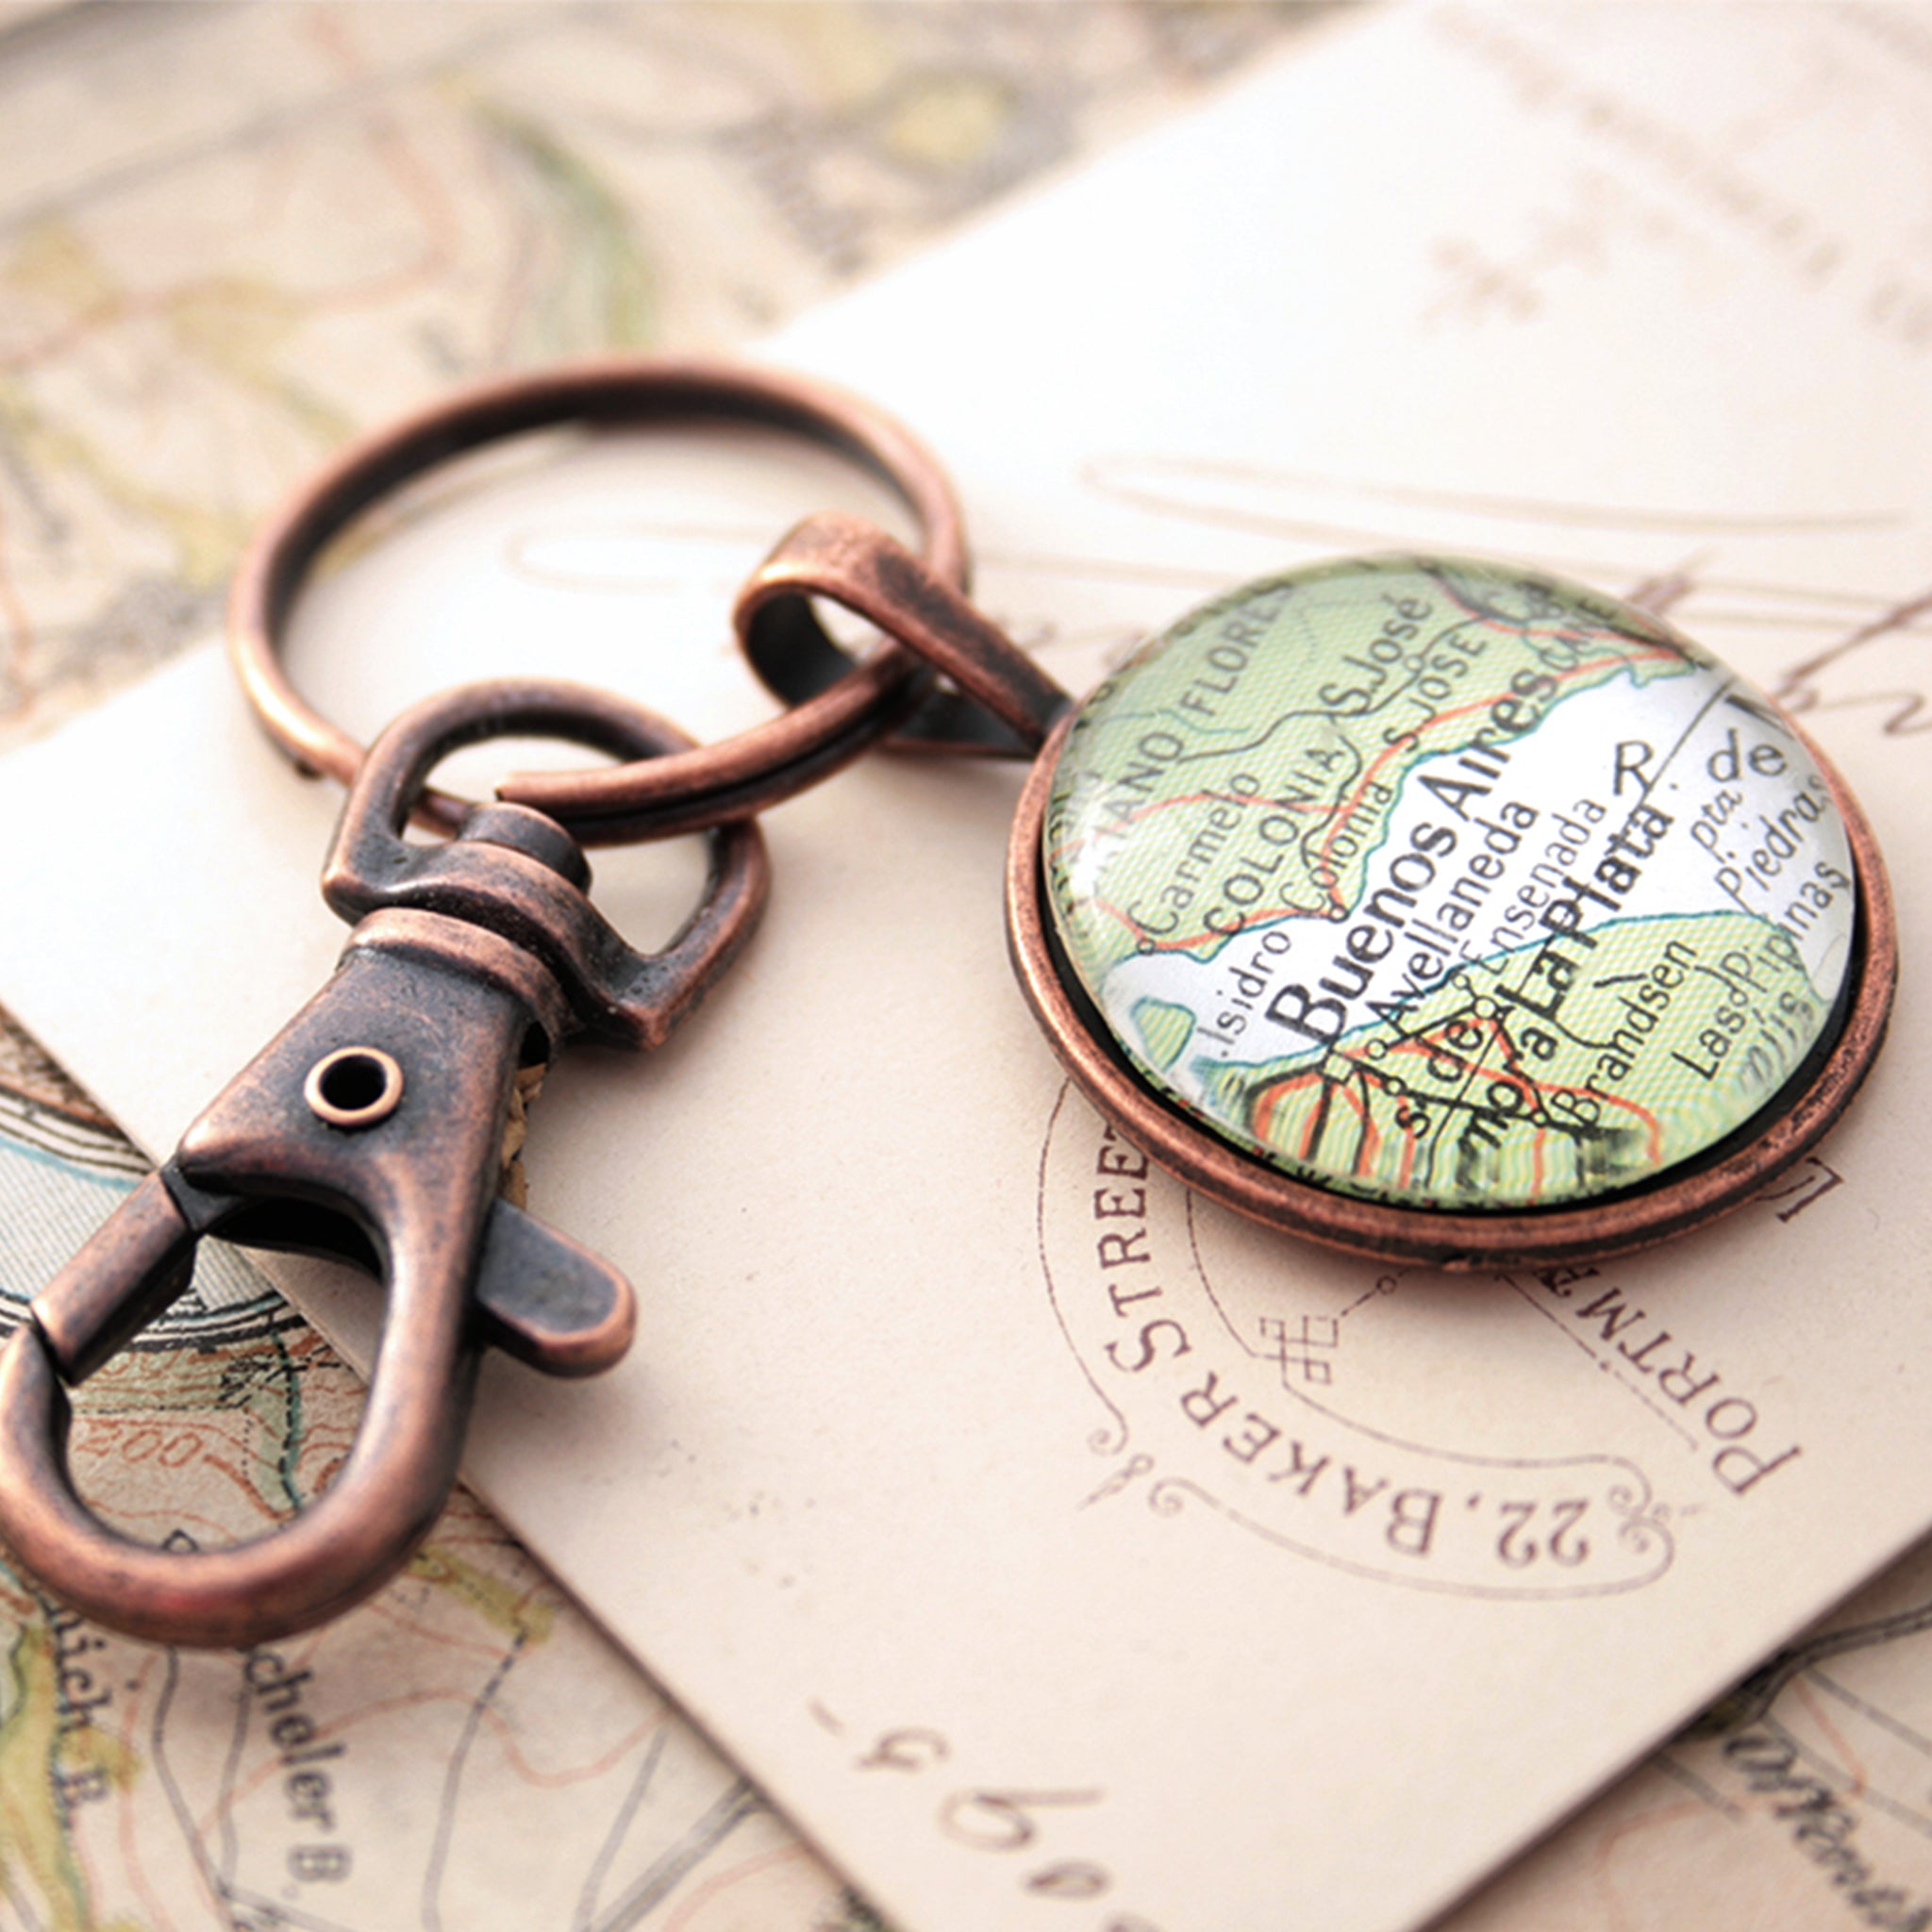 Copper keychain featuring map of Buenos Aires